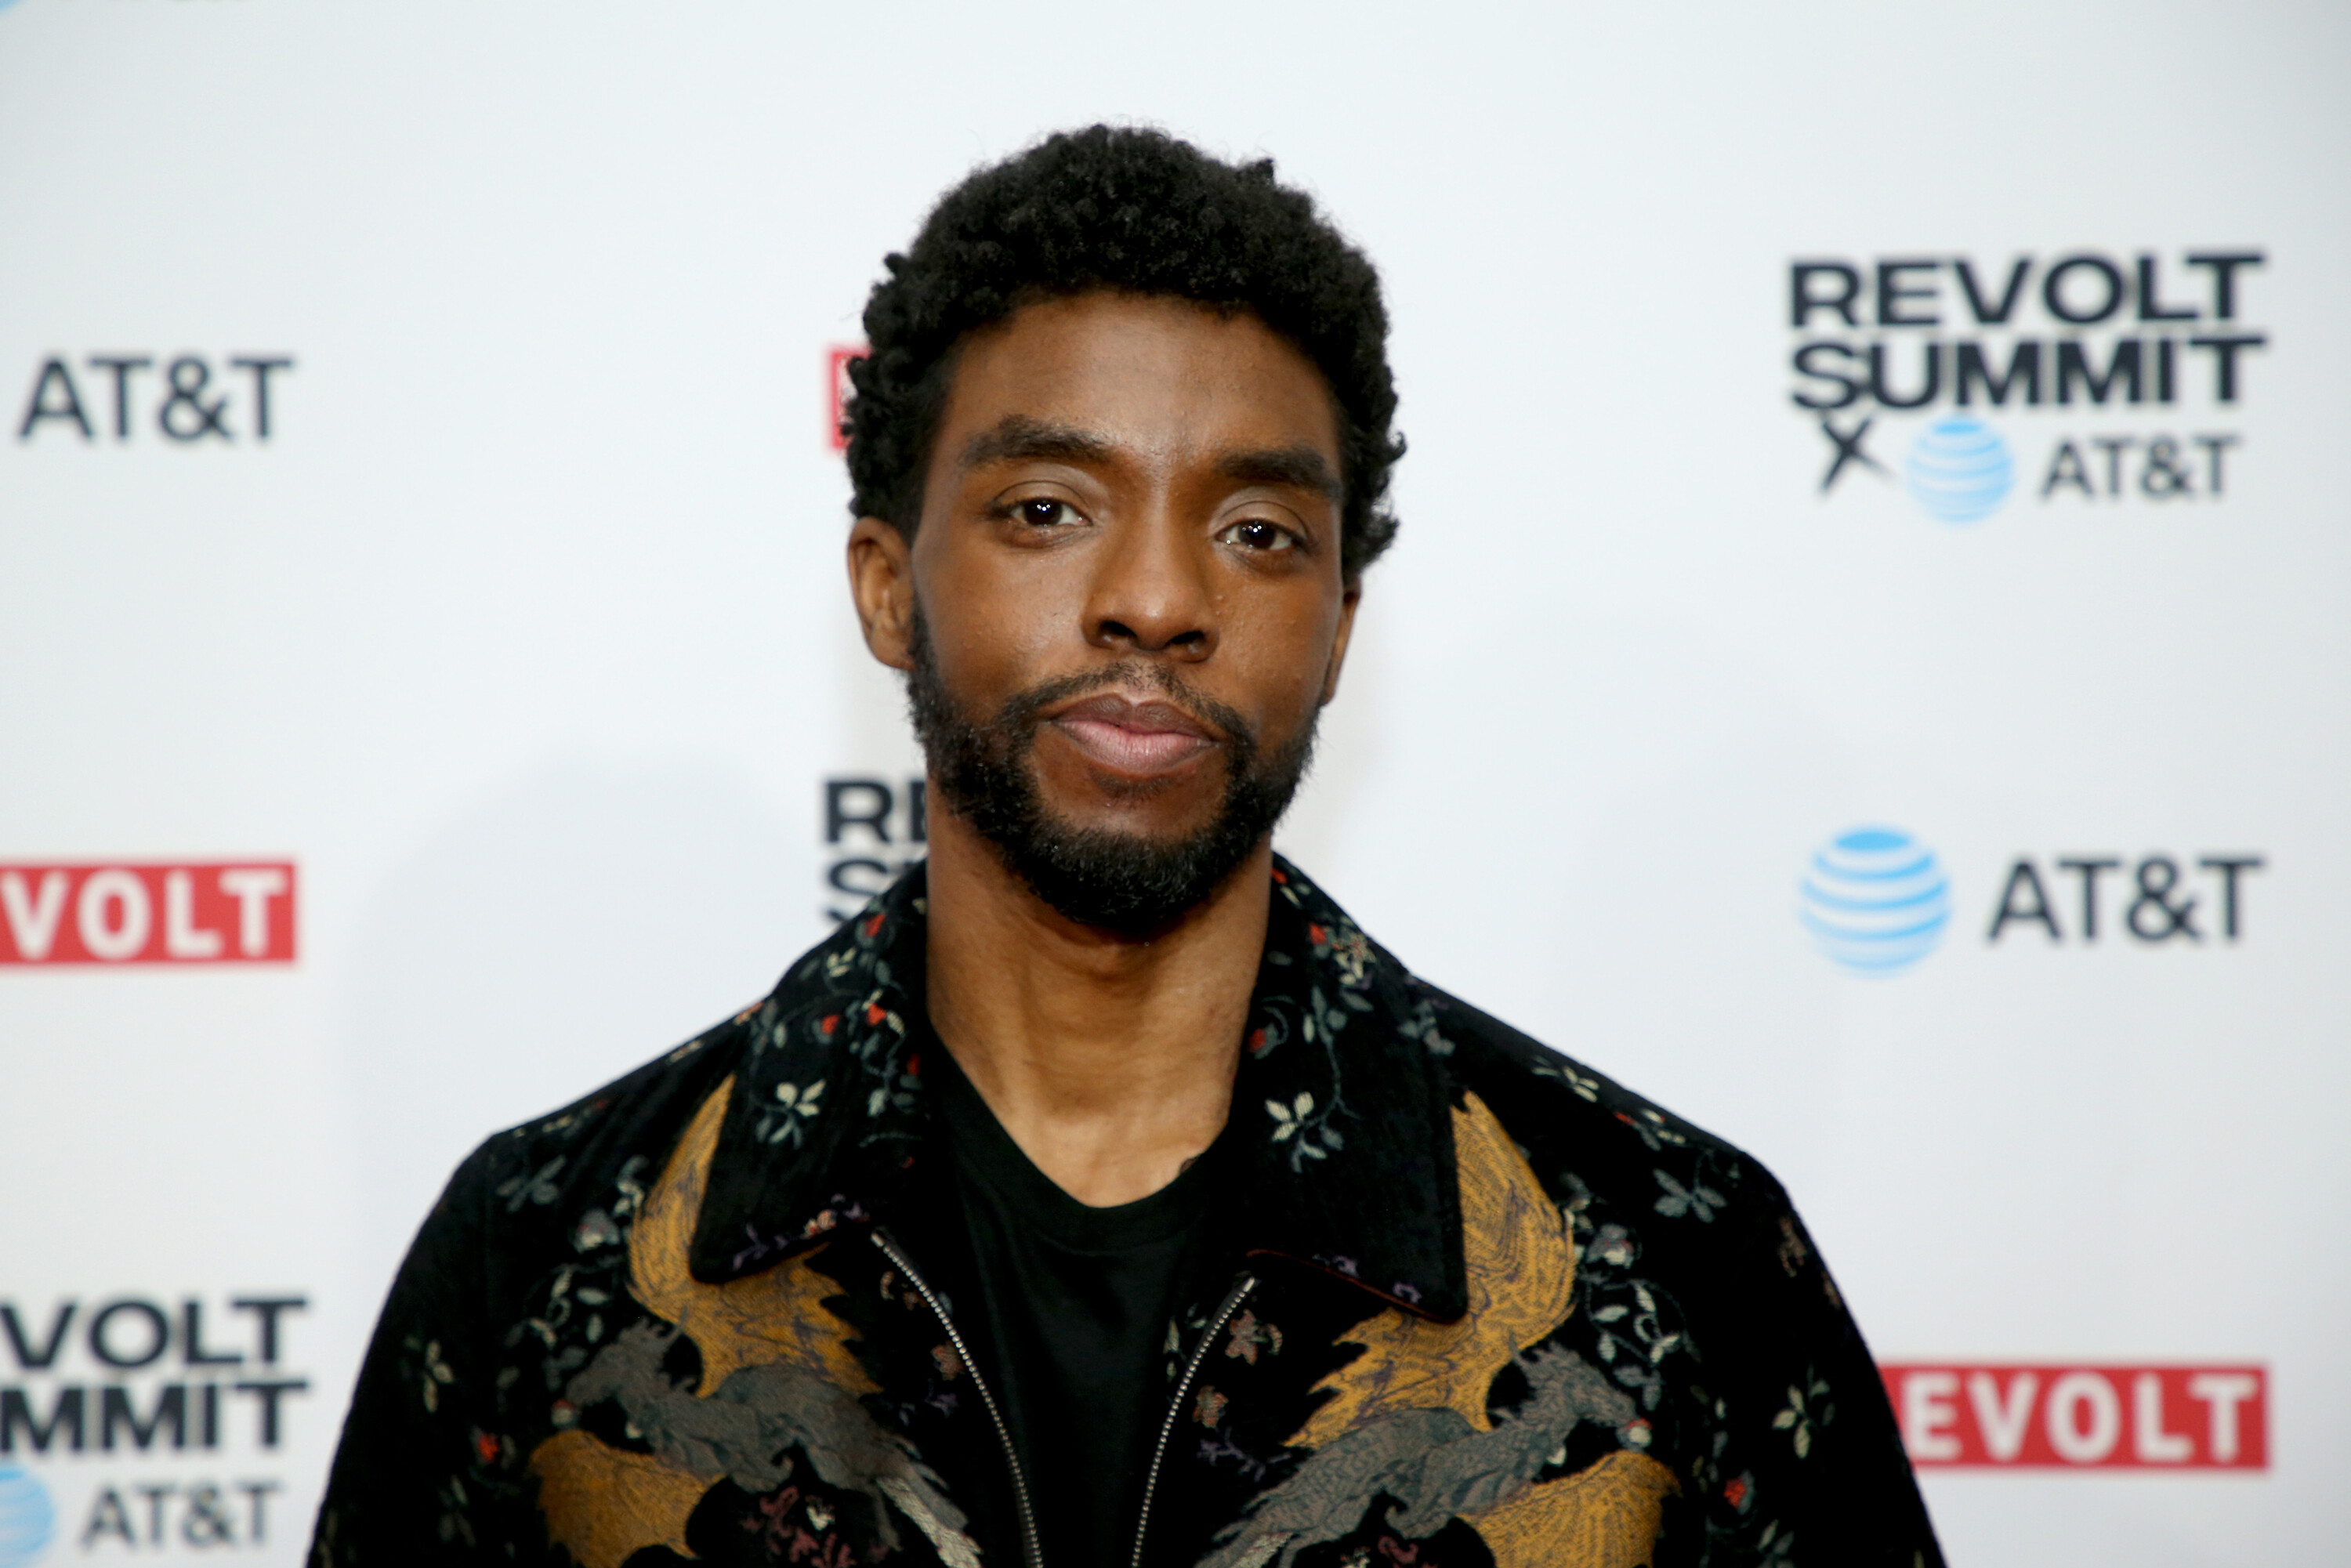 Chadwick Boseman fought to reestablish a fine arts department. It's now named after him